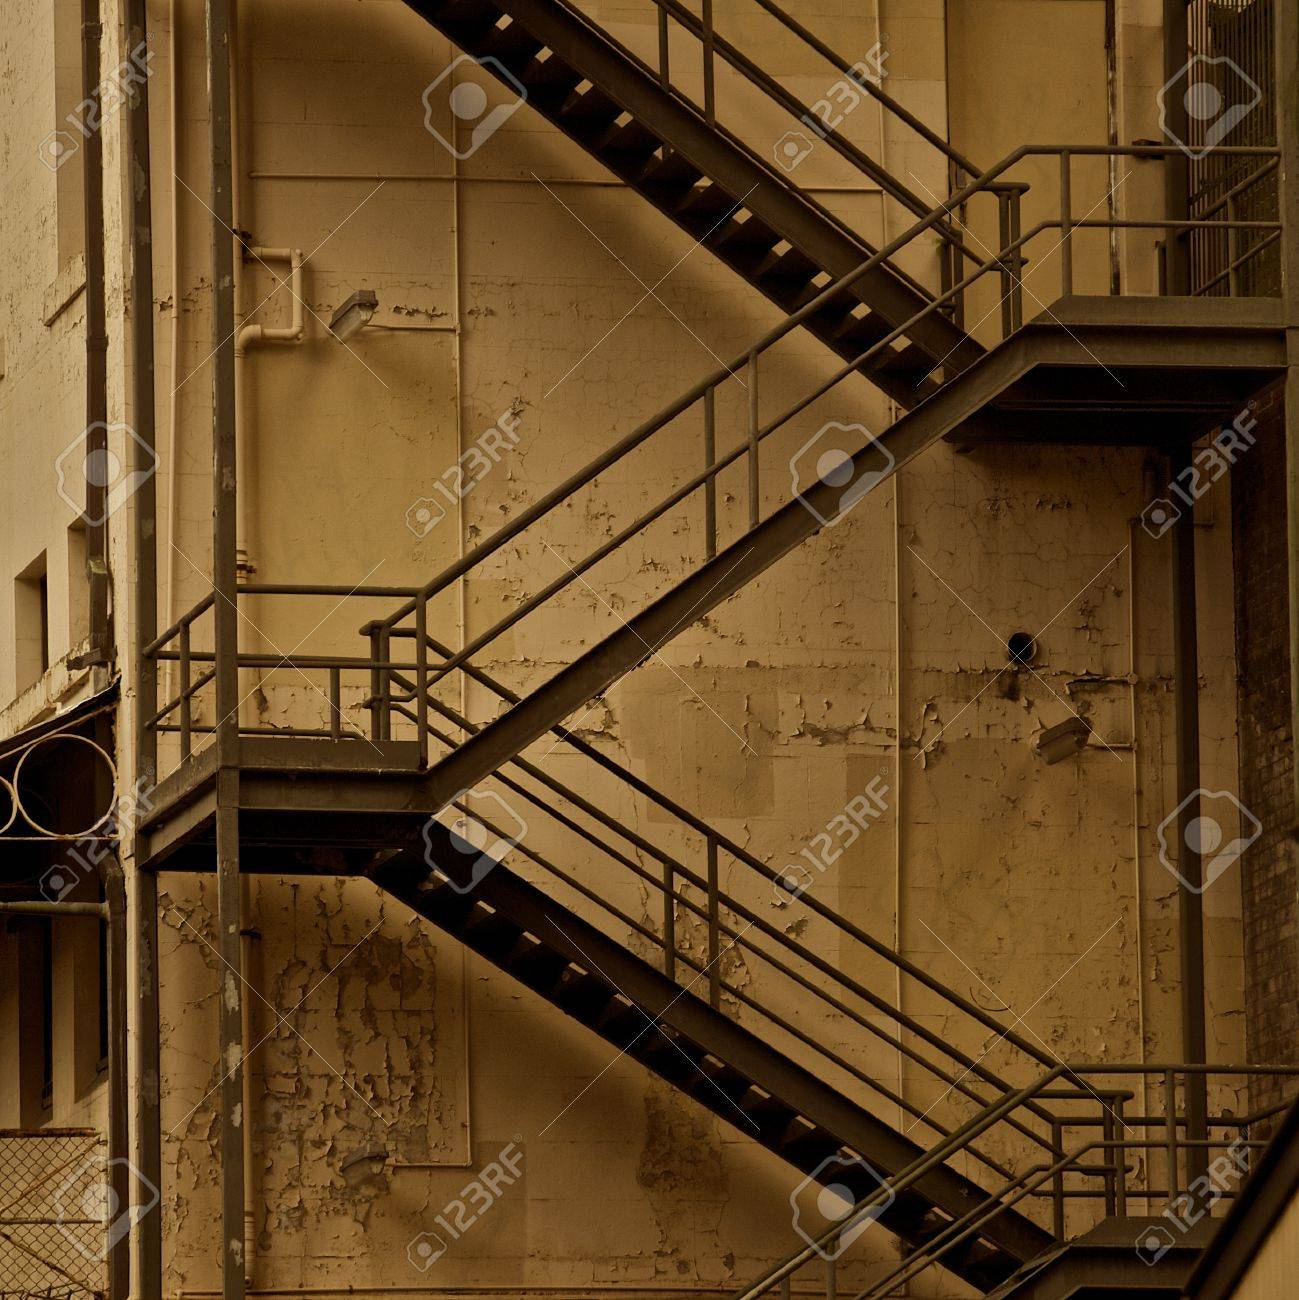 Metal Fire Escape Stairs on the Side of a Textured Building Sepia - 13828525